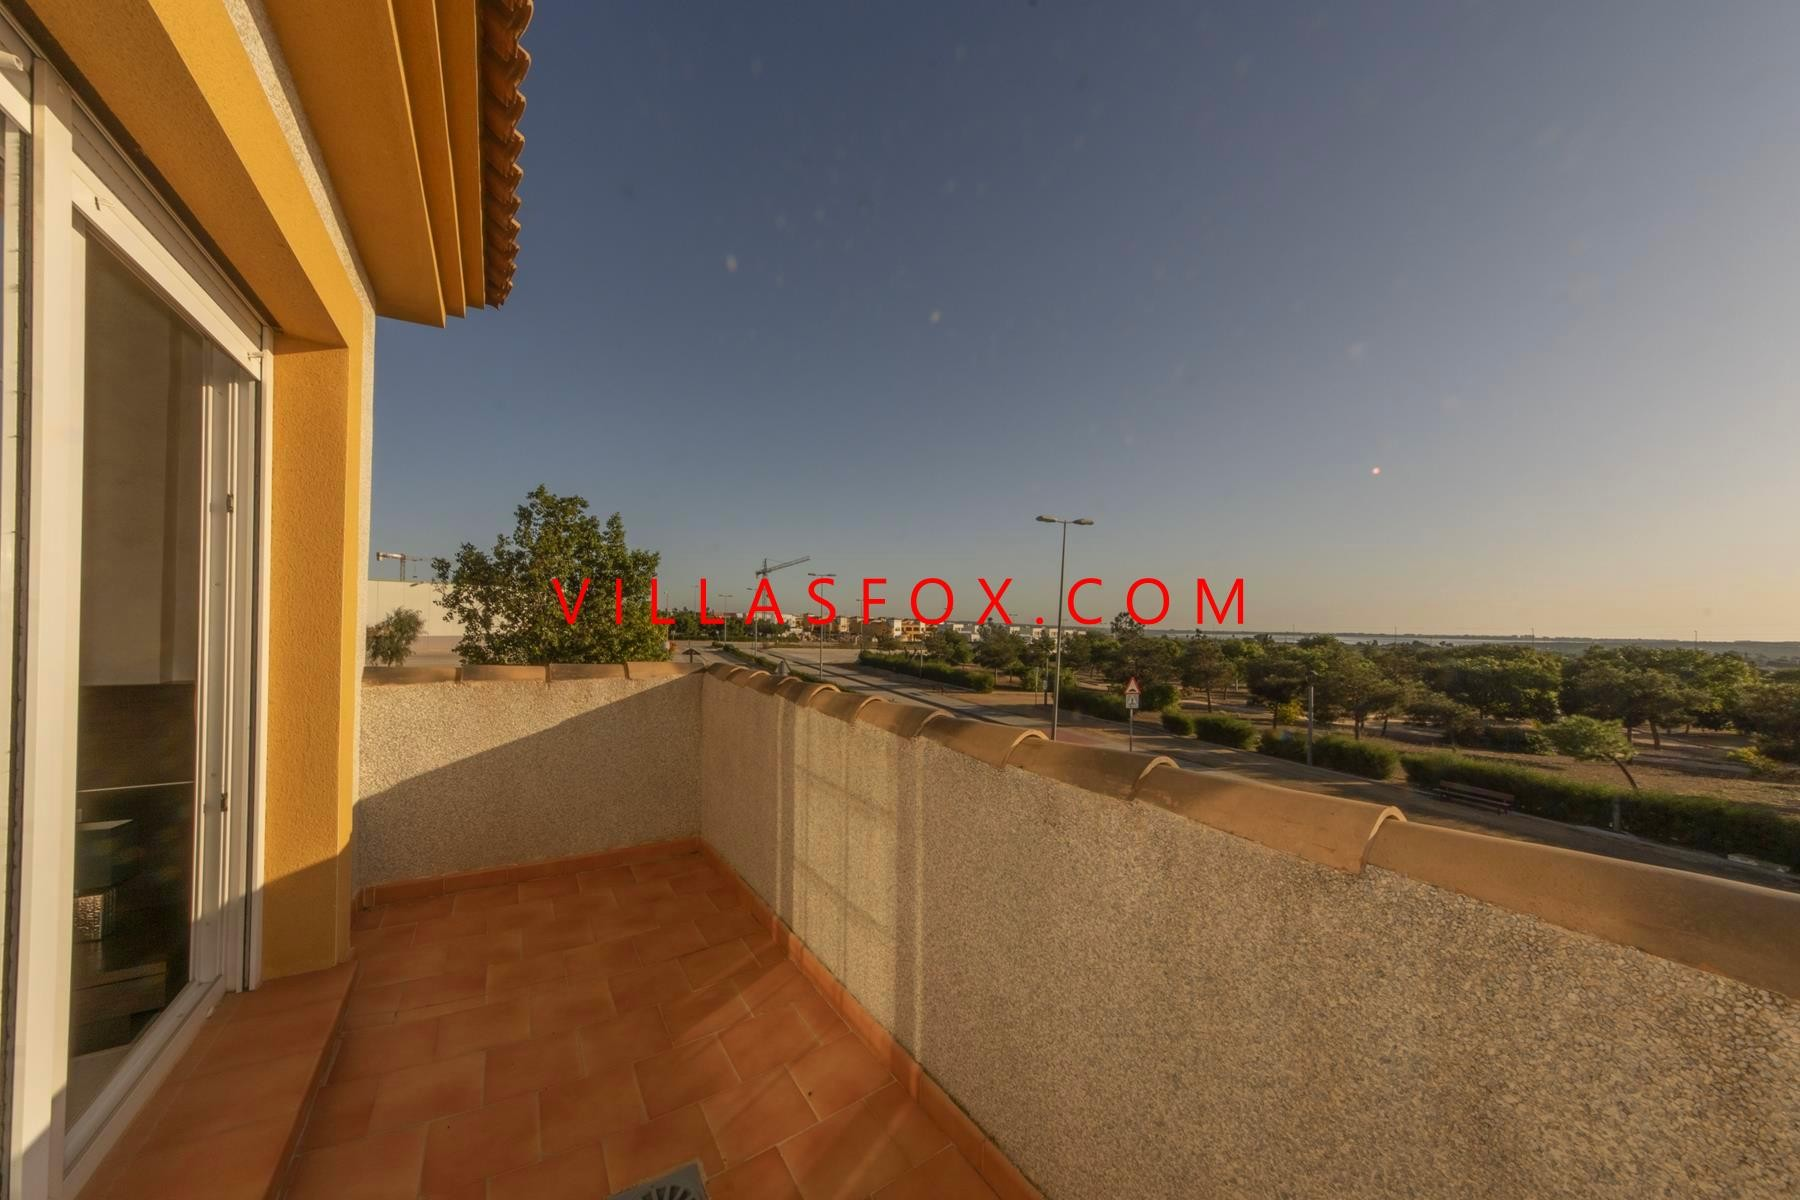 Los Montesinos (La Herrada) 3-bedroom detached villa with pool and great views, excellent condition